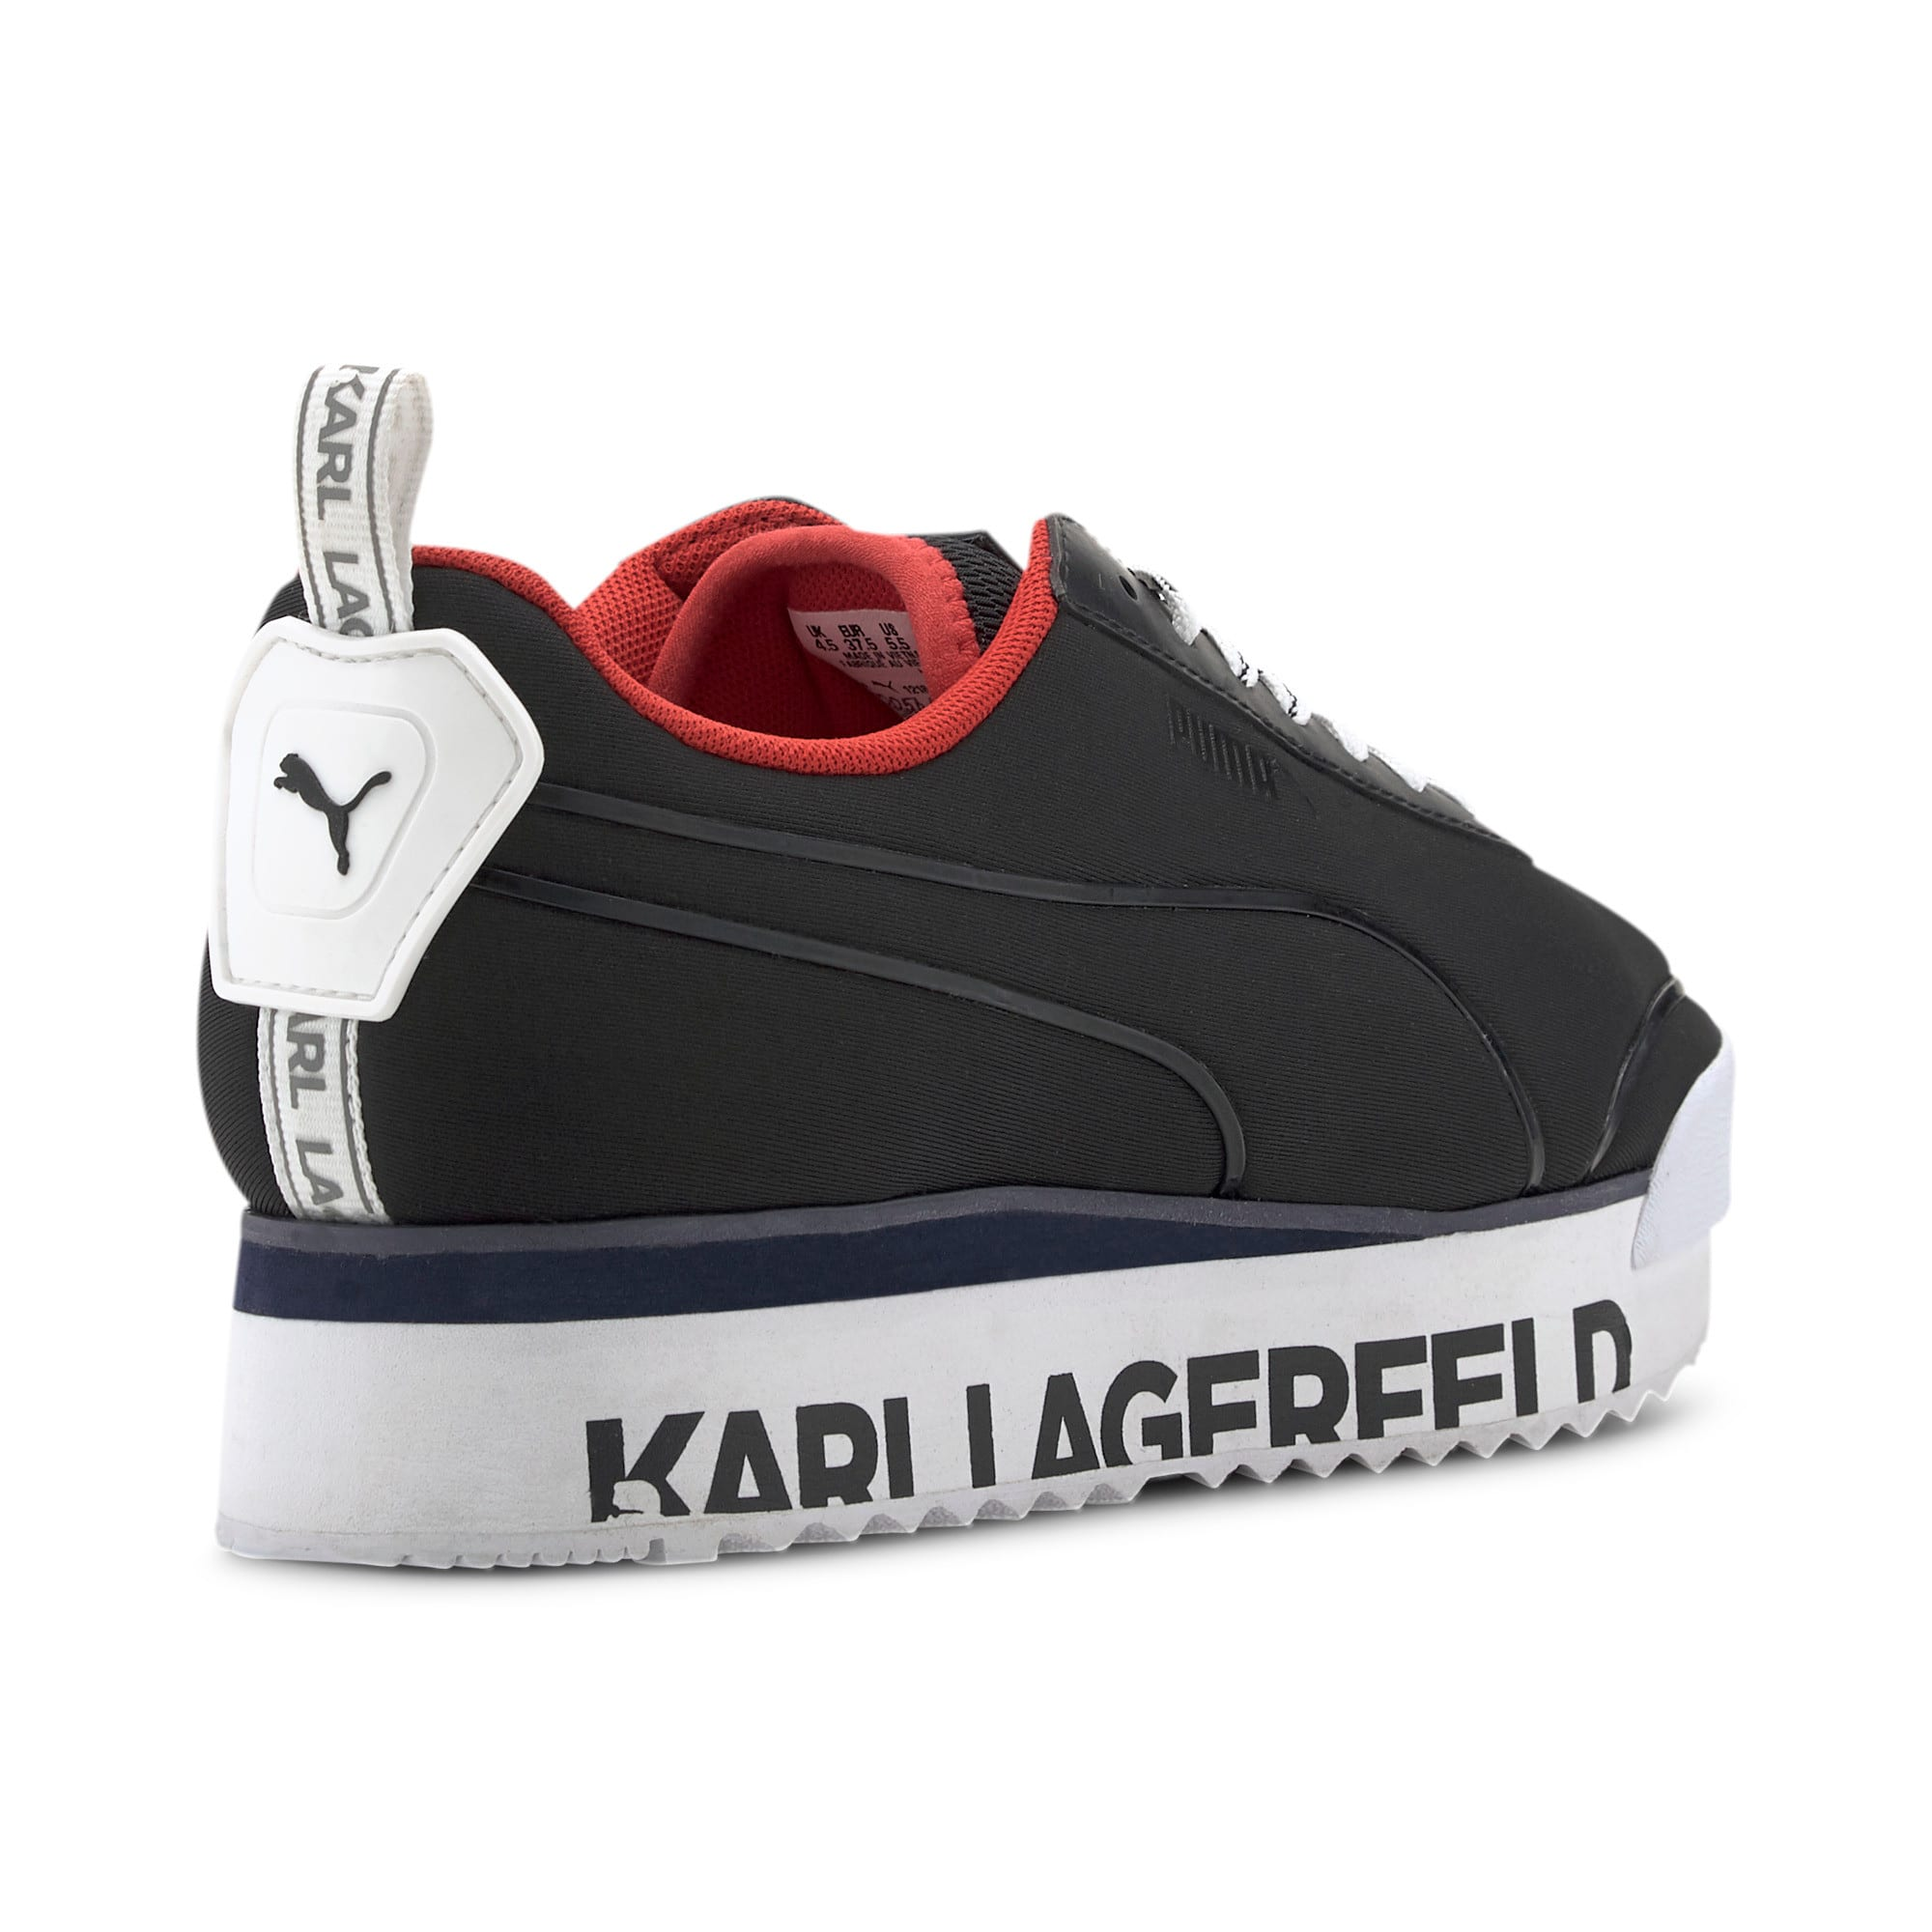 Thumbnail 9 of PUMA x KARL LAGERFELD Roma Amor Women's Trainers, Puma Black-Puma Black, medium